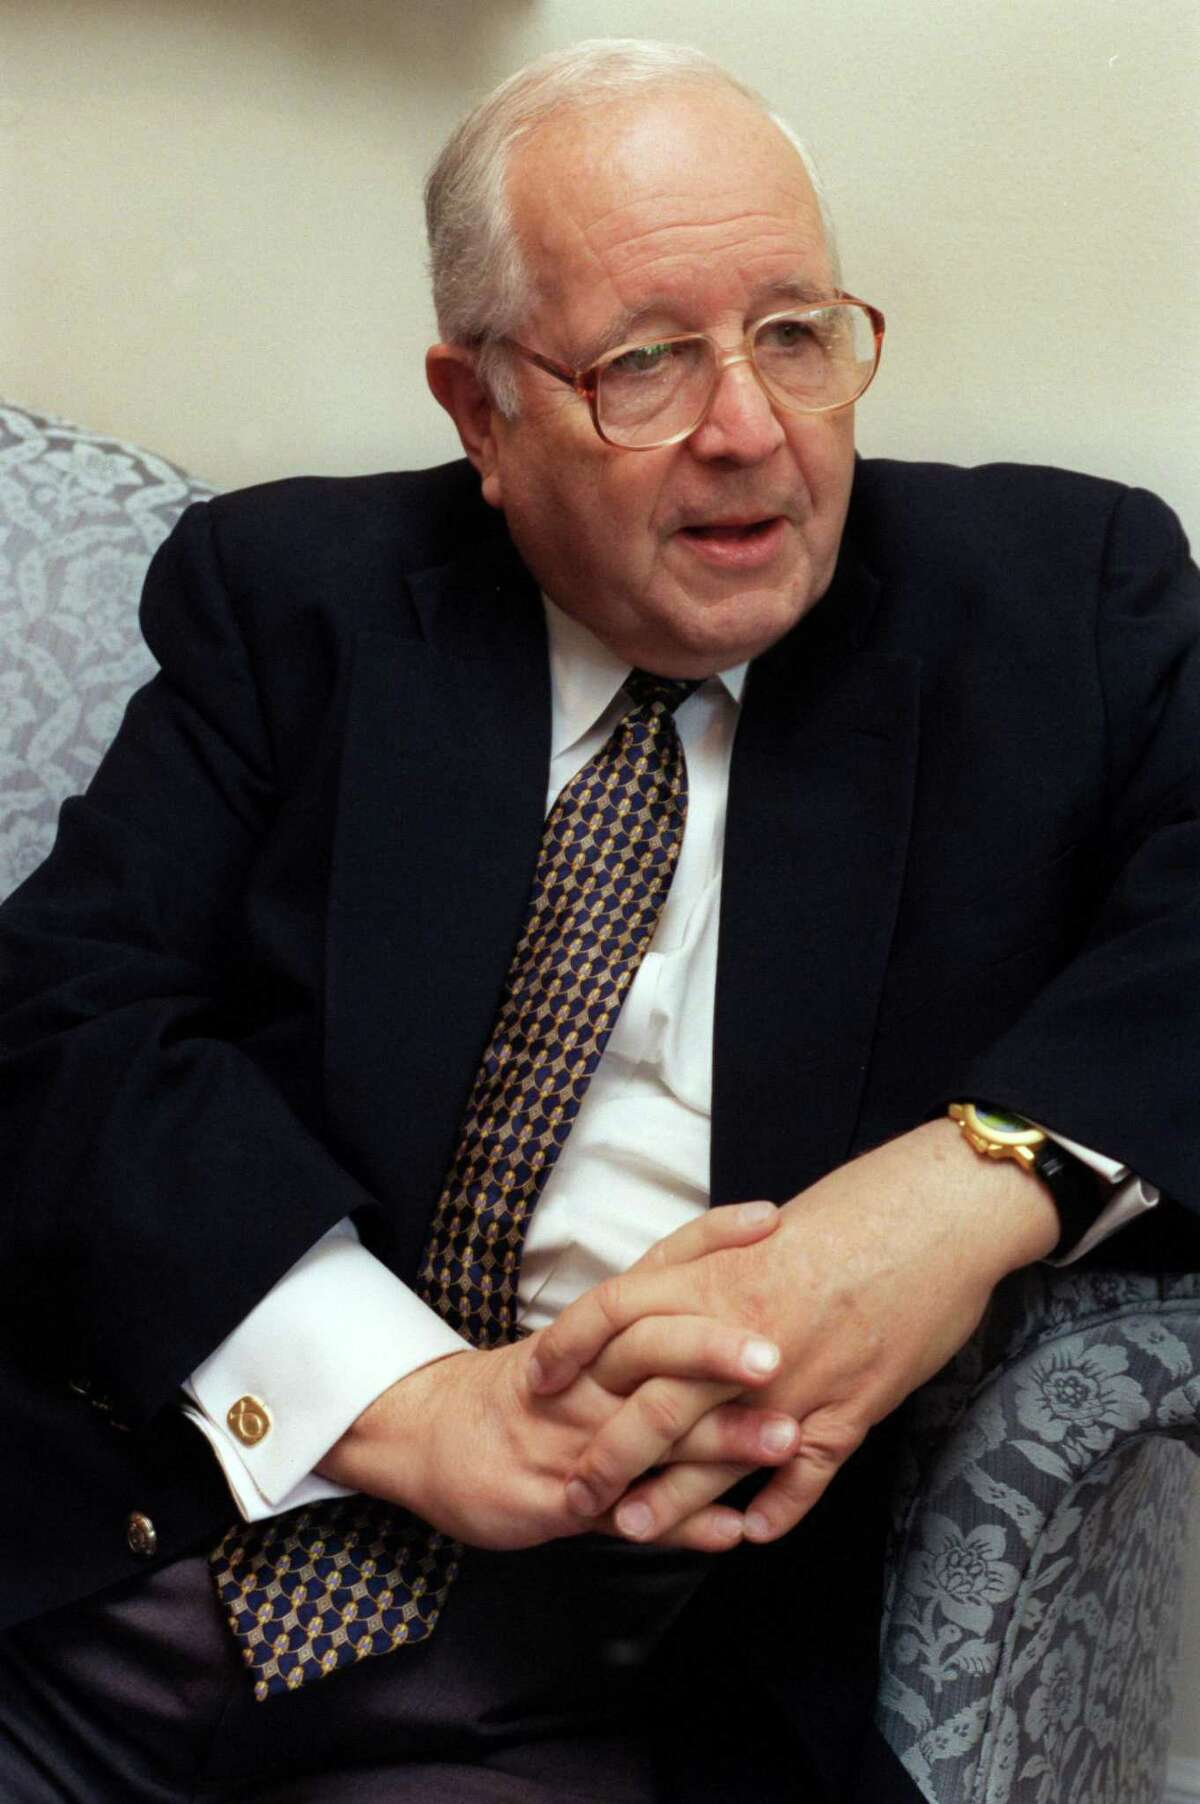 Judge Paul Pressler was one of the key leaders of the conservative resurgence within the Southern Baptist Convention. He has written a new book describing his experiences during the convention upheaval. He is seated during an interview at his home and also with his wife, Nancy and son Paul Jr. on 6/18/99. (Betty Tichich/Chronicle) HOUCHRON CAPTION (07/10/1999): Retired state appellate Judge Paul Pressler describes details of his new book, ``A Hill on Which to Die.''